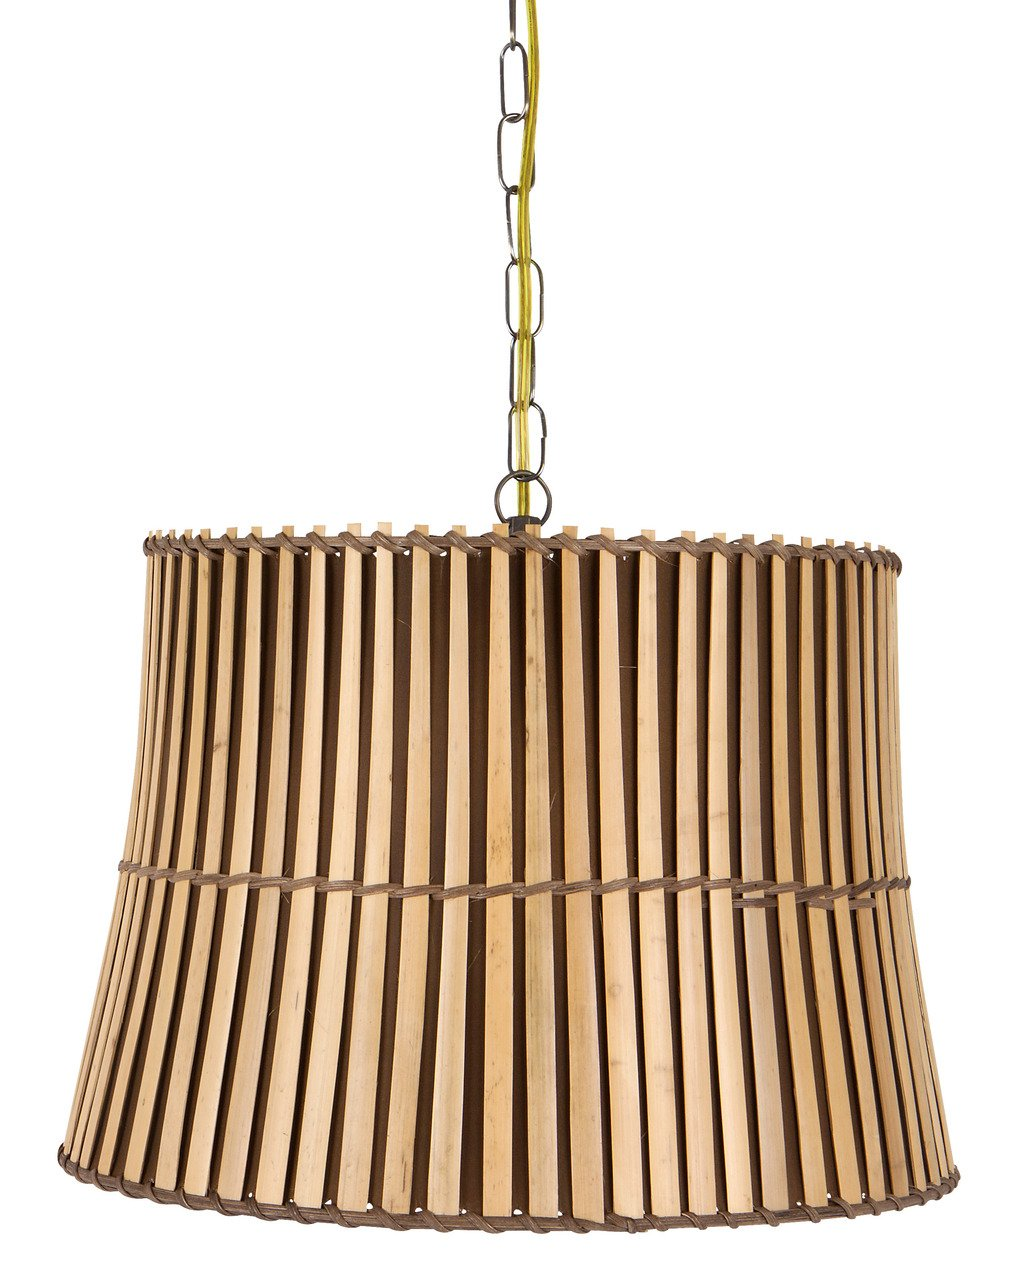 Upgradelights bamboo swag lamp lighting fixture hanging plug in upgradelights bamboo swag lamp lighting fixture hanging plug in amazon arubaitofo Image collections